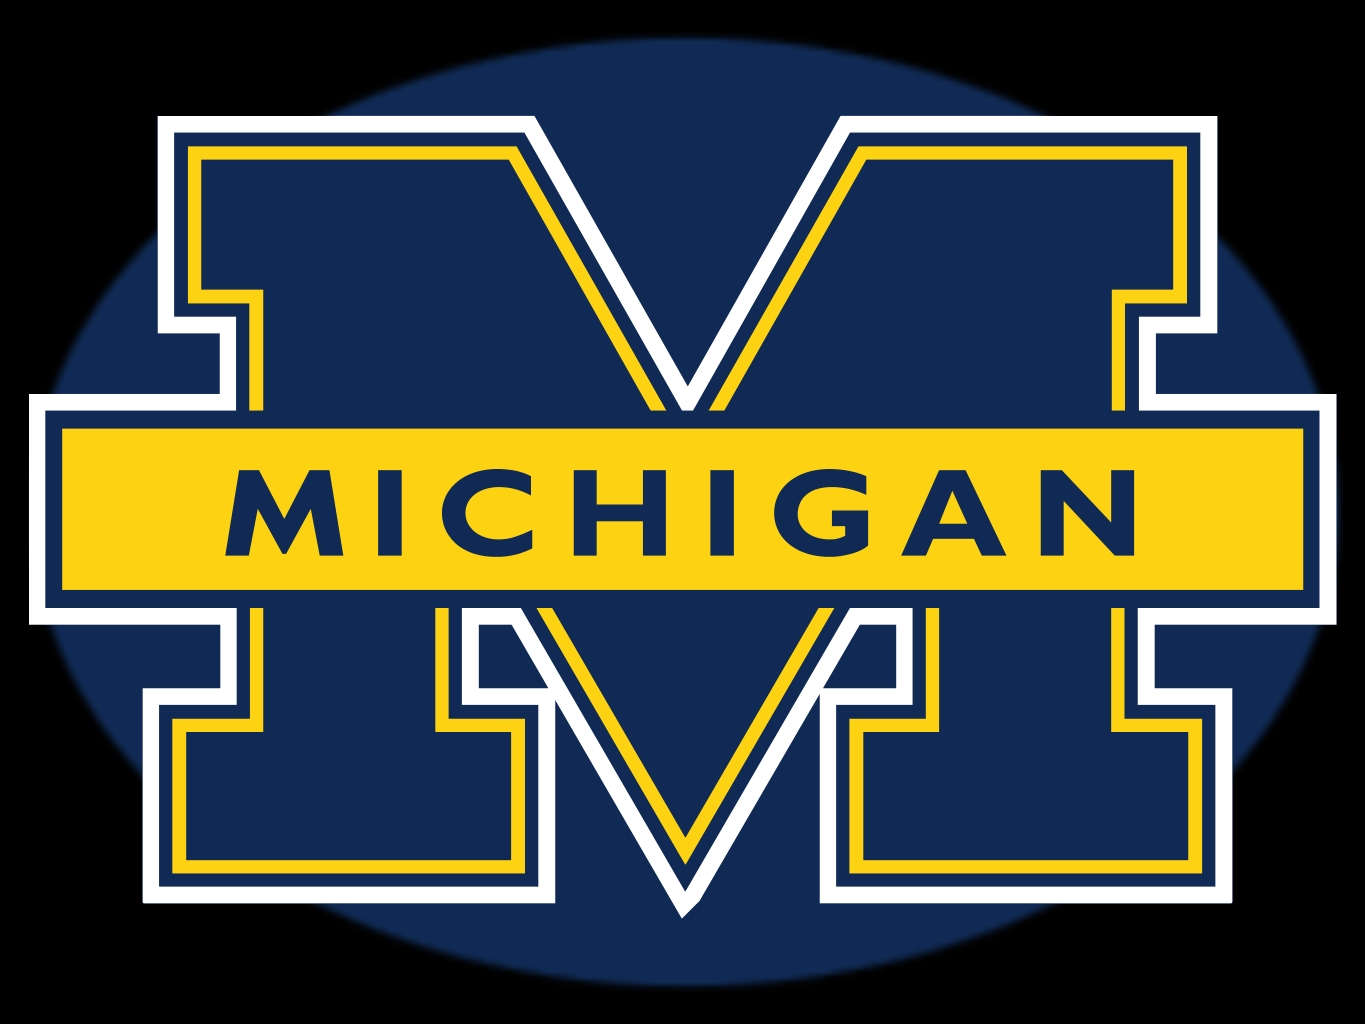 """University Of Michigan """"wolverines"""". Best Saving Accounts Interest Rates. Self Storage Midlothian Va Patent And Trade. Alabama Uniform Traffic Ticket And Complaint. Executive Summary Of A Business Report"""